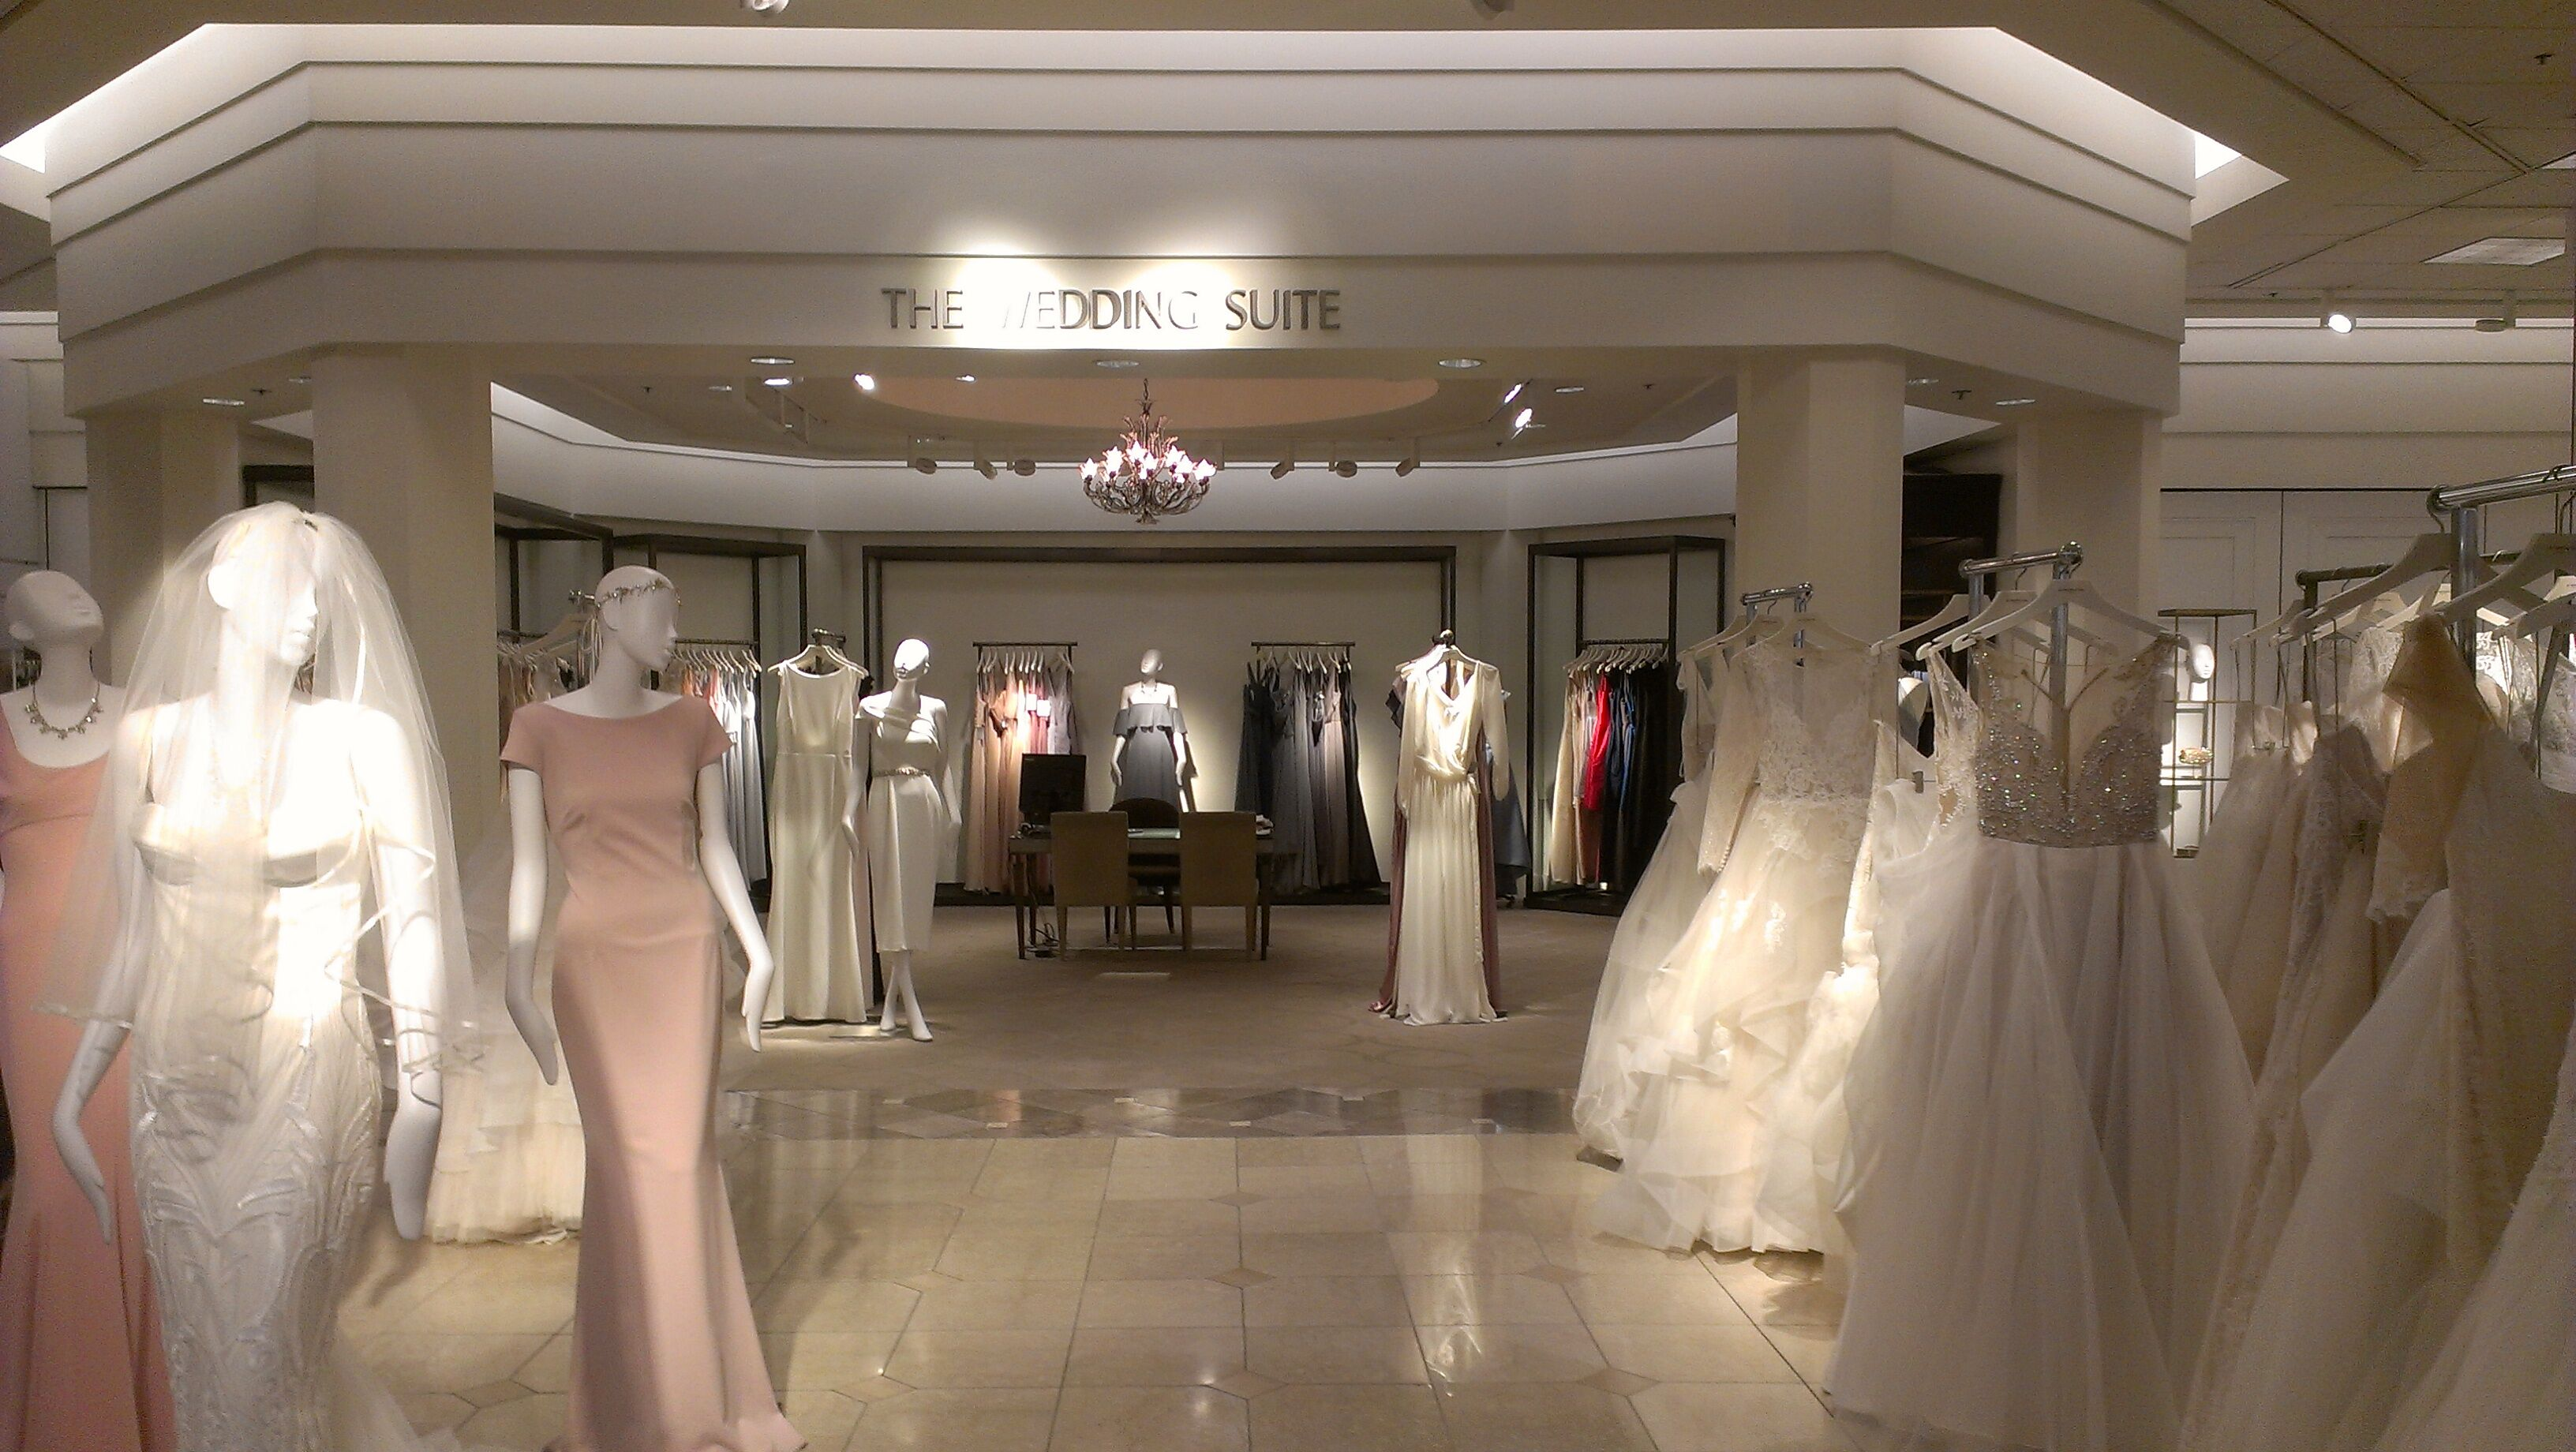 Nordstrom Wedding Suite - Paramus, NJ